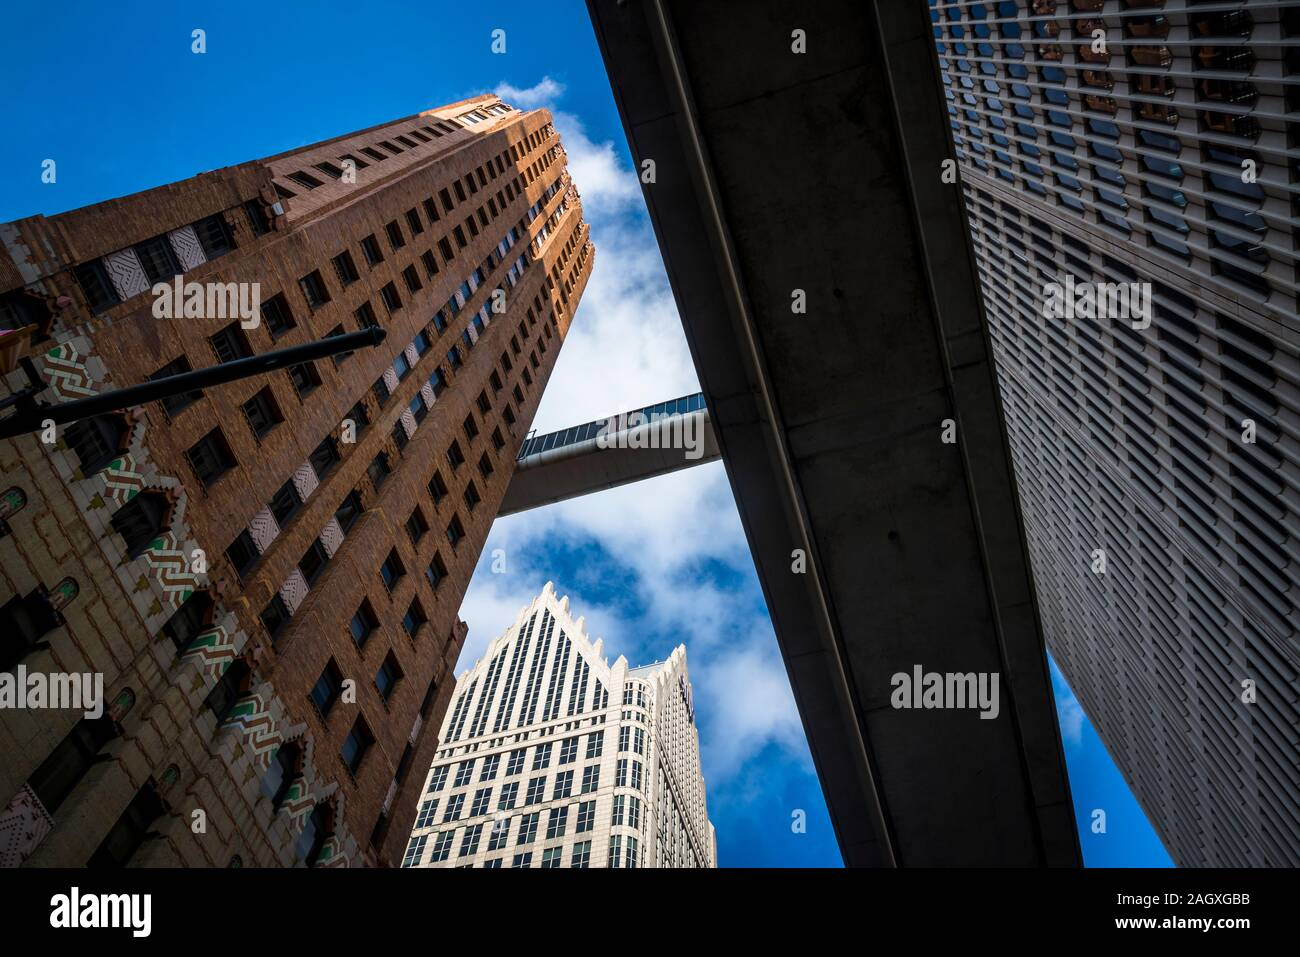 Ally Detroit Center, seen under the Detroit Skybridge, connecting the 16th floors of the Guardian Building and One Woodward, designed in 1976, Detroit Stock Photo